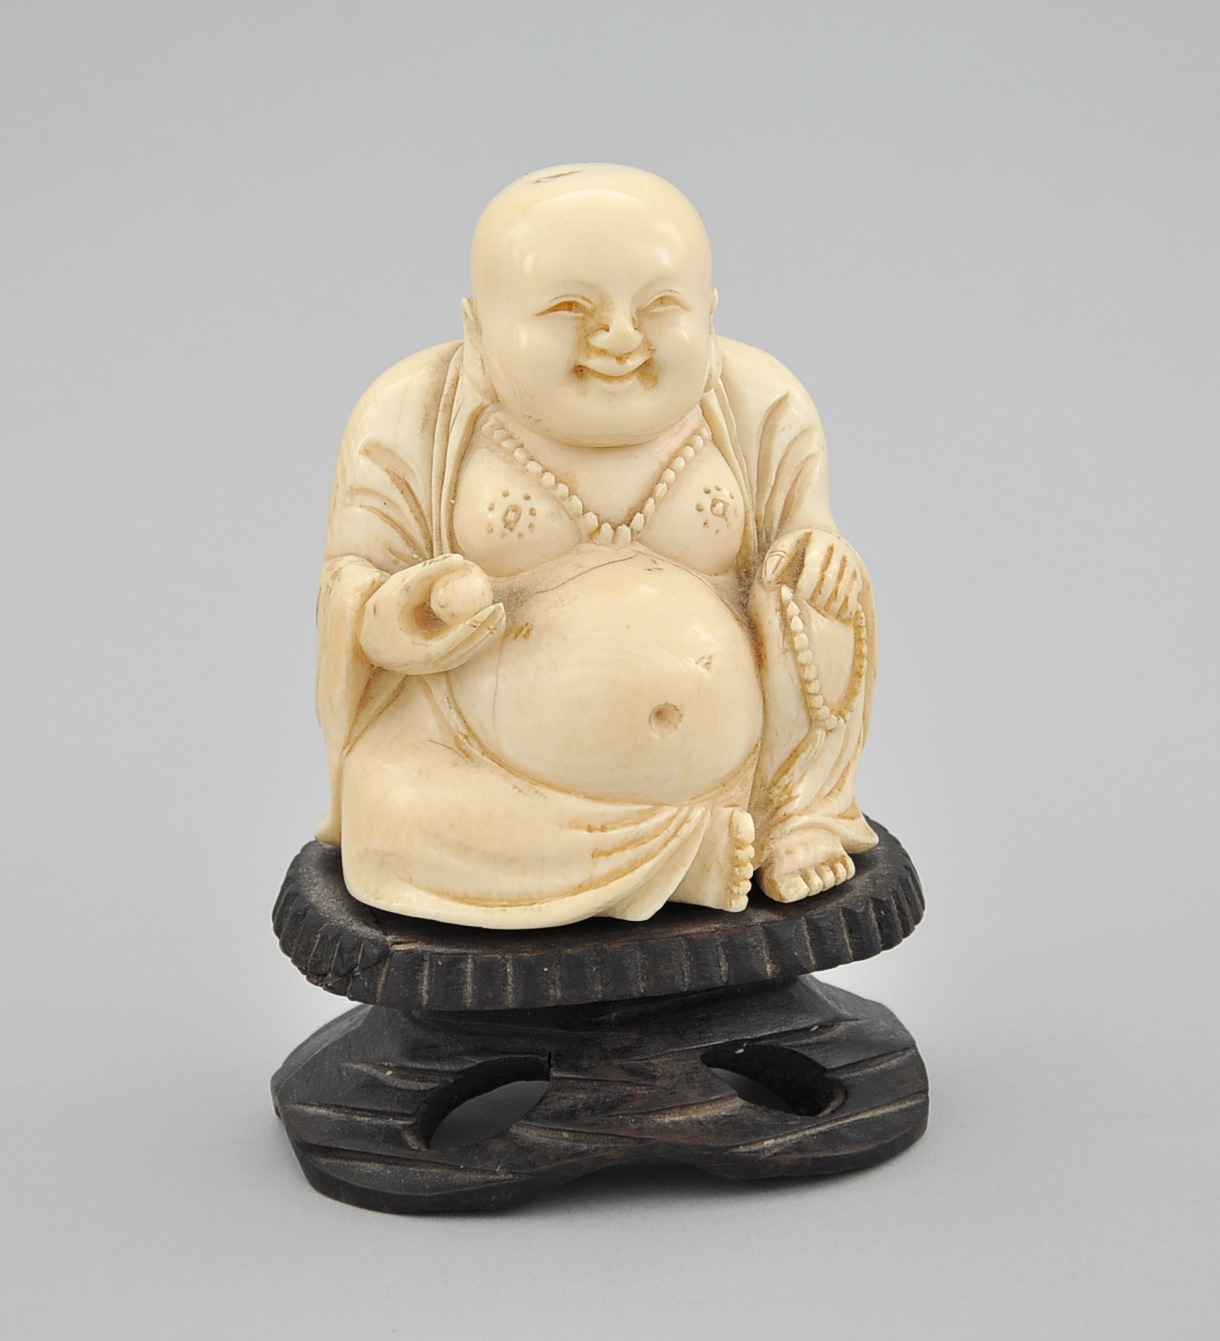 Orientalia november 2009 auction a carved ivory figure of seated buddha mozeypictures Images